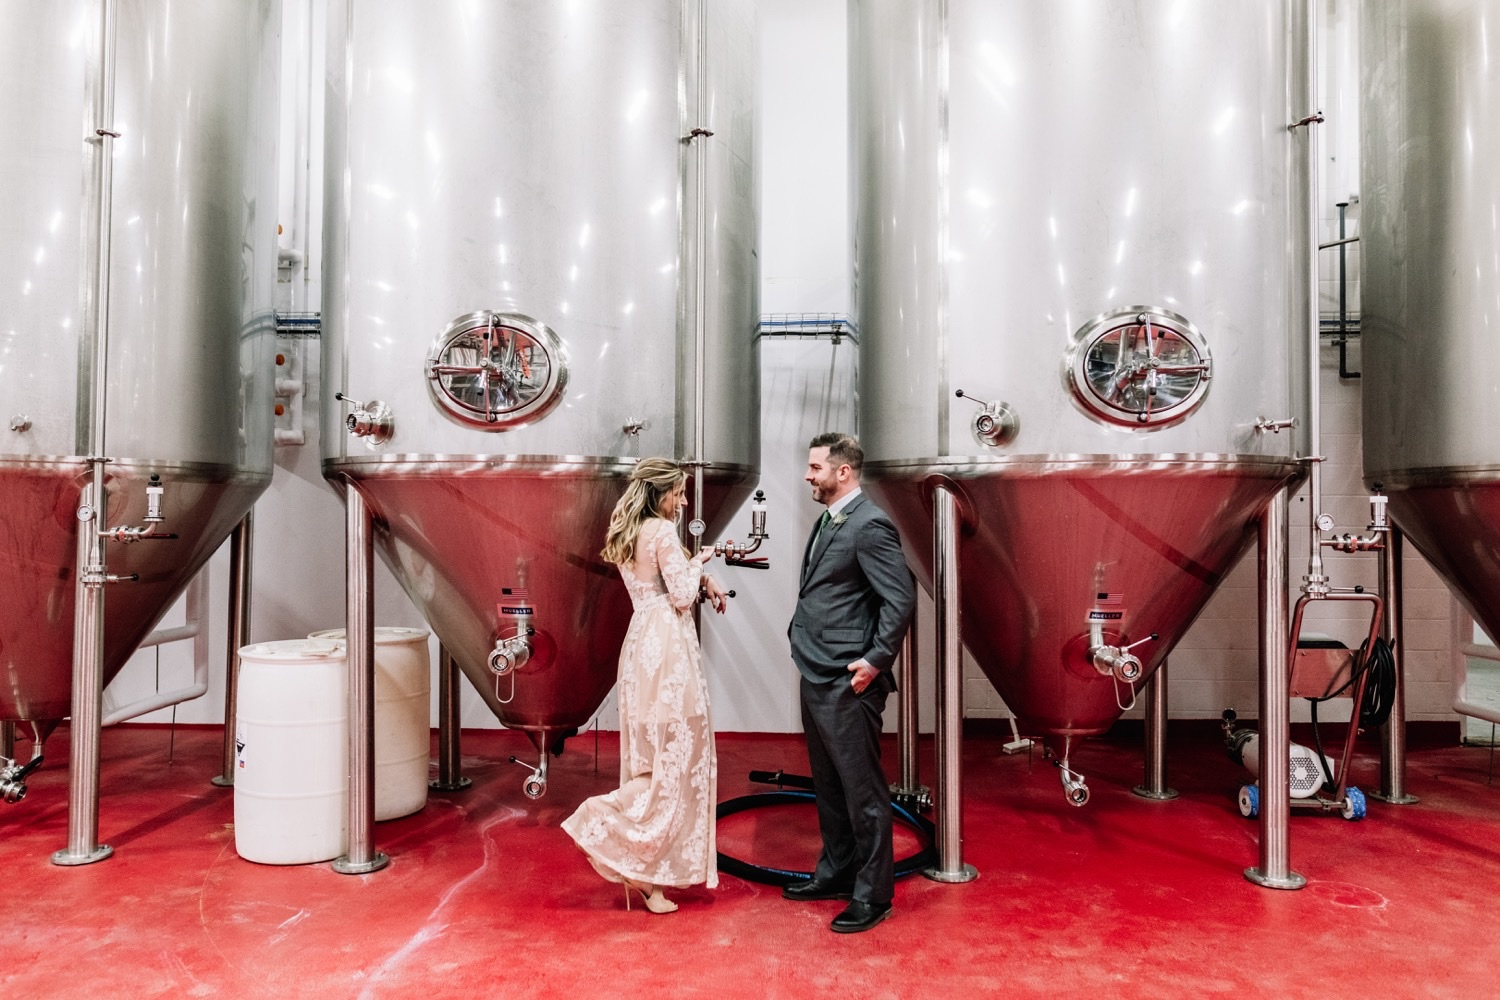 Surprise Wedding at Workhorse Brewing Company